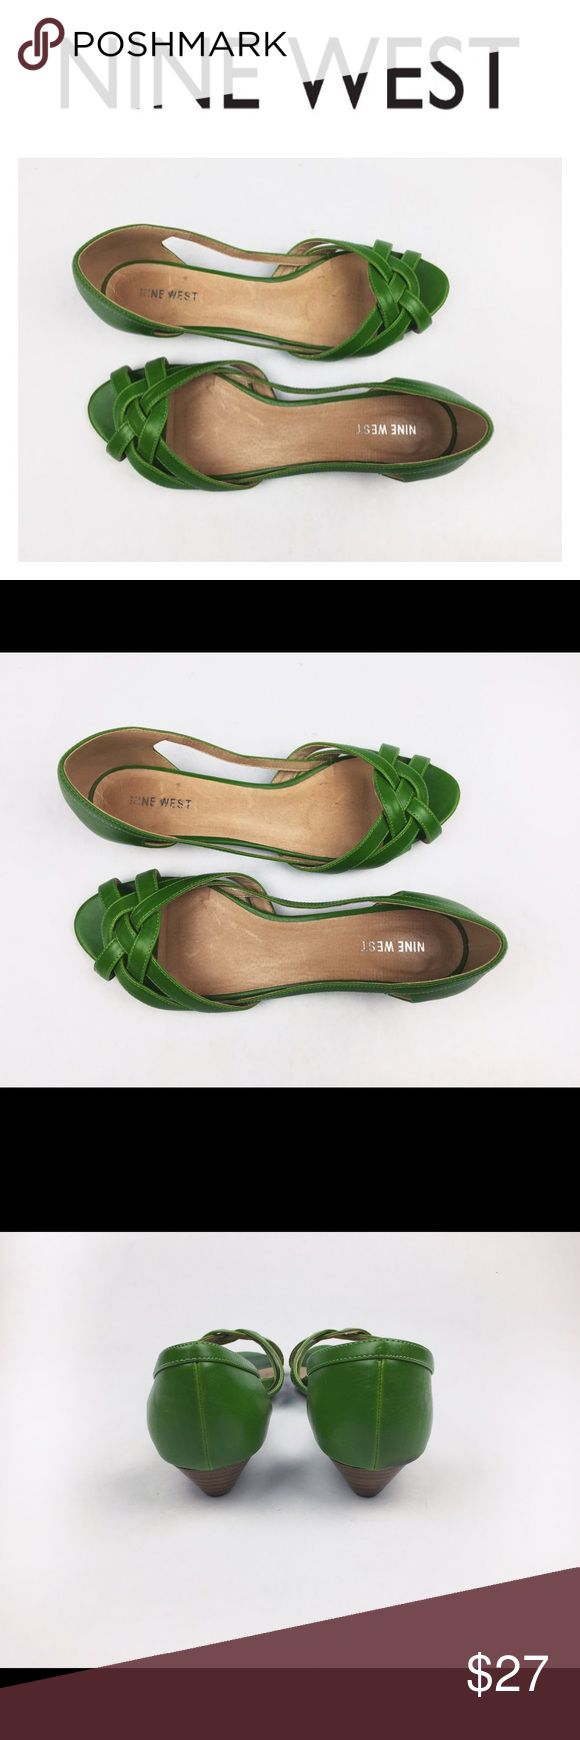 NINE WEST FLAT GREEN SANDALS SZ11 Super cute Nine West flat green leather sandals in size 11. VERY gently worn maybe 3 times or less. Excellent condition! Love them? Make an offer! Questions? Ask me 💖😉 Nine West Shoes Sandals